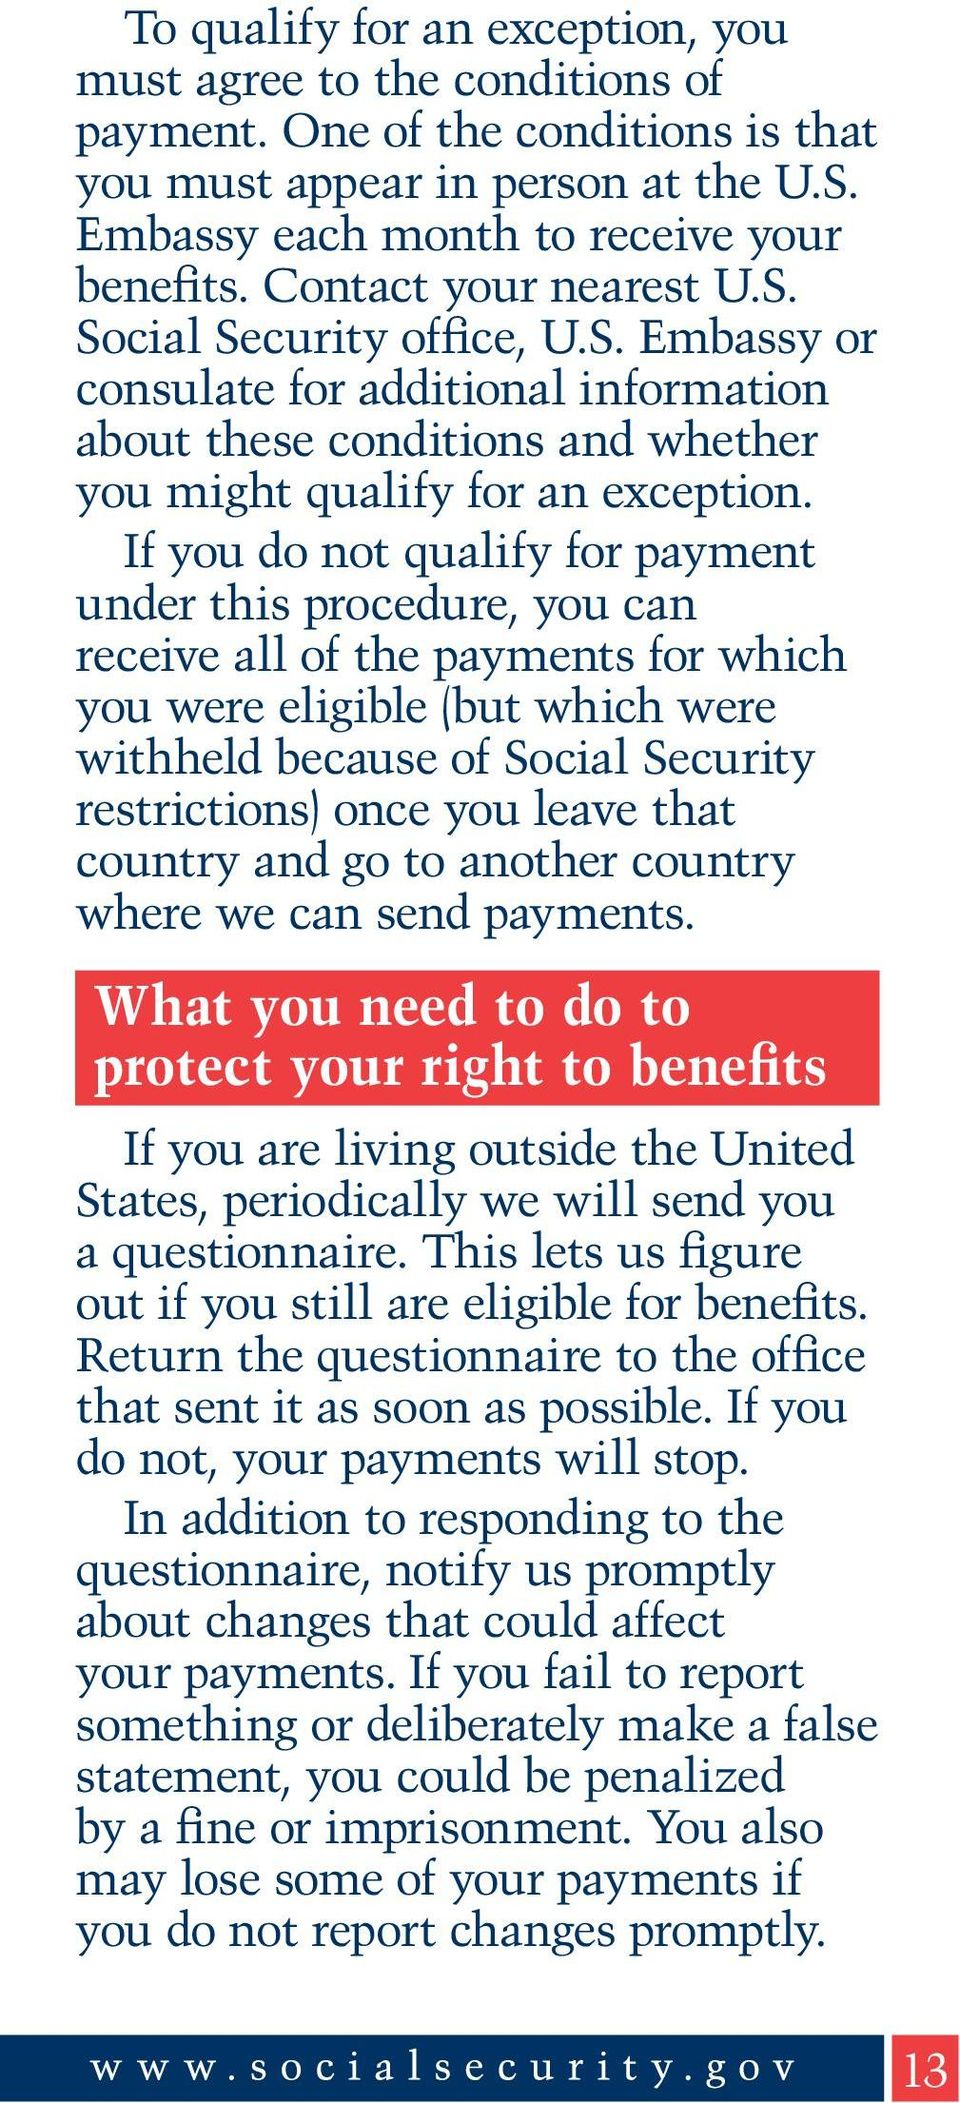 If you do not qualify for payment under this procedure, you can receive all of the payments for which you were eligible (but which were withheld because of Social Security restrictions) once you